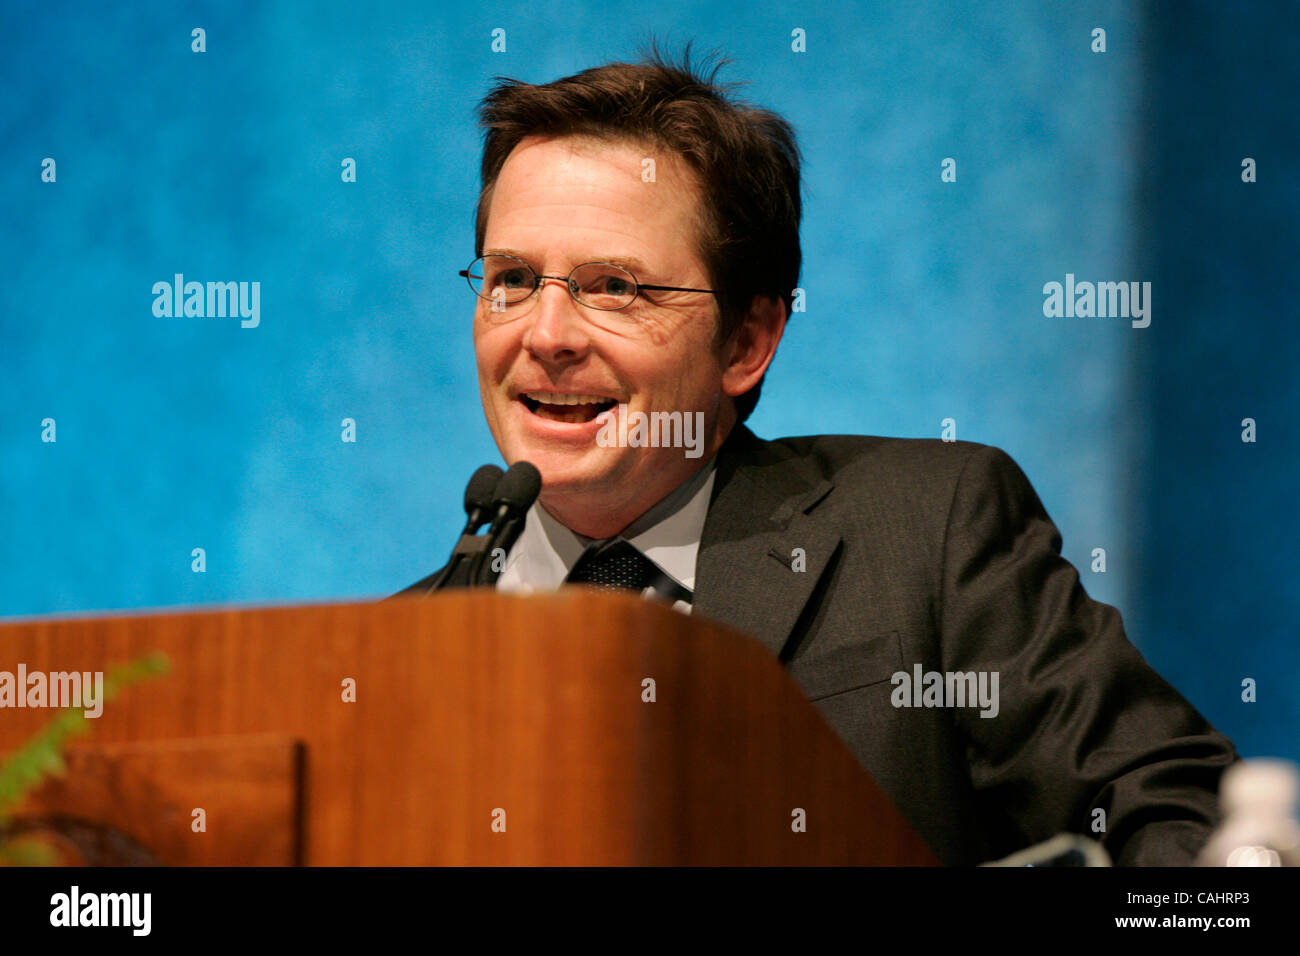 Dec 14, 2007 - San Diego, California, USA - MICHAEL J. FOX, spoke to well wishers Friday after receiving the Maurice - Stock Image